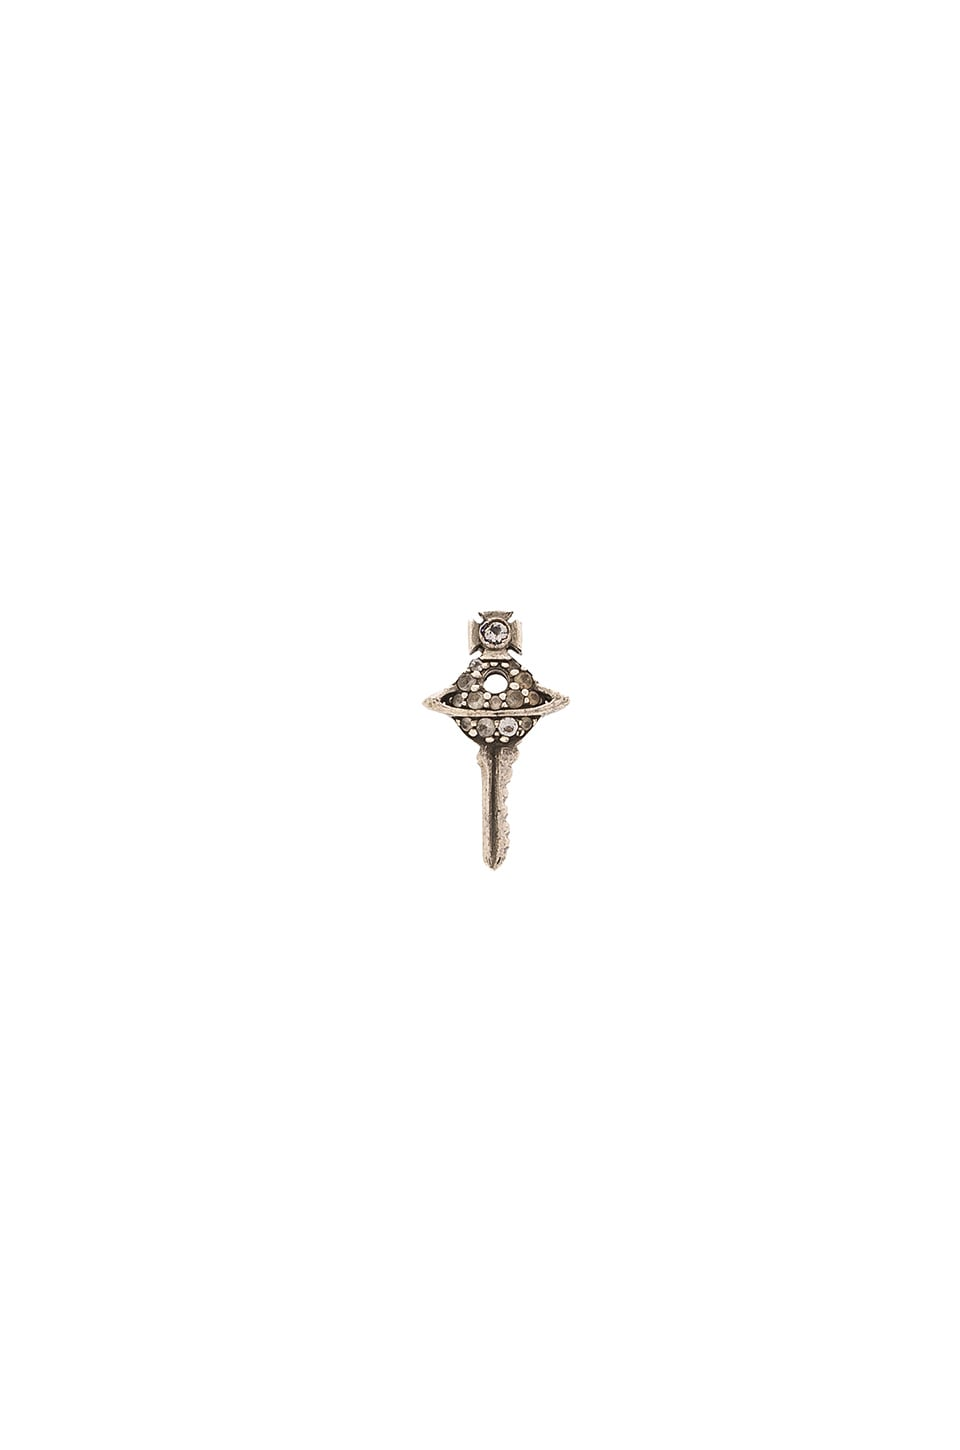 Darius Key Single Stud by Vivienne Westwood